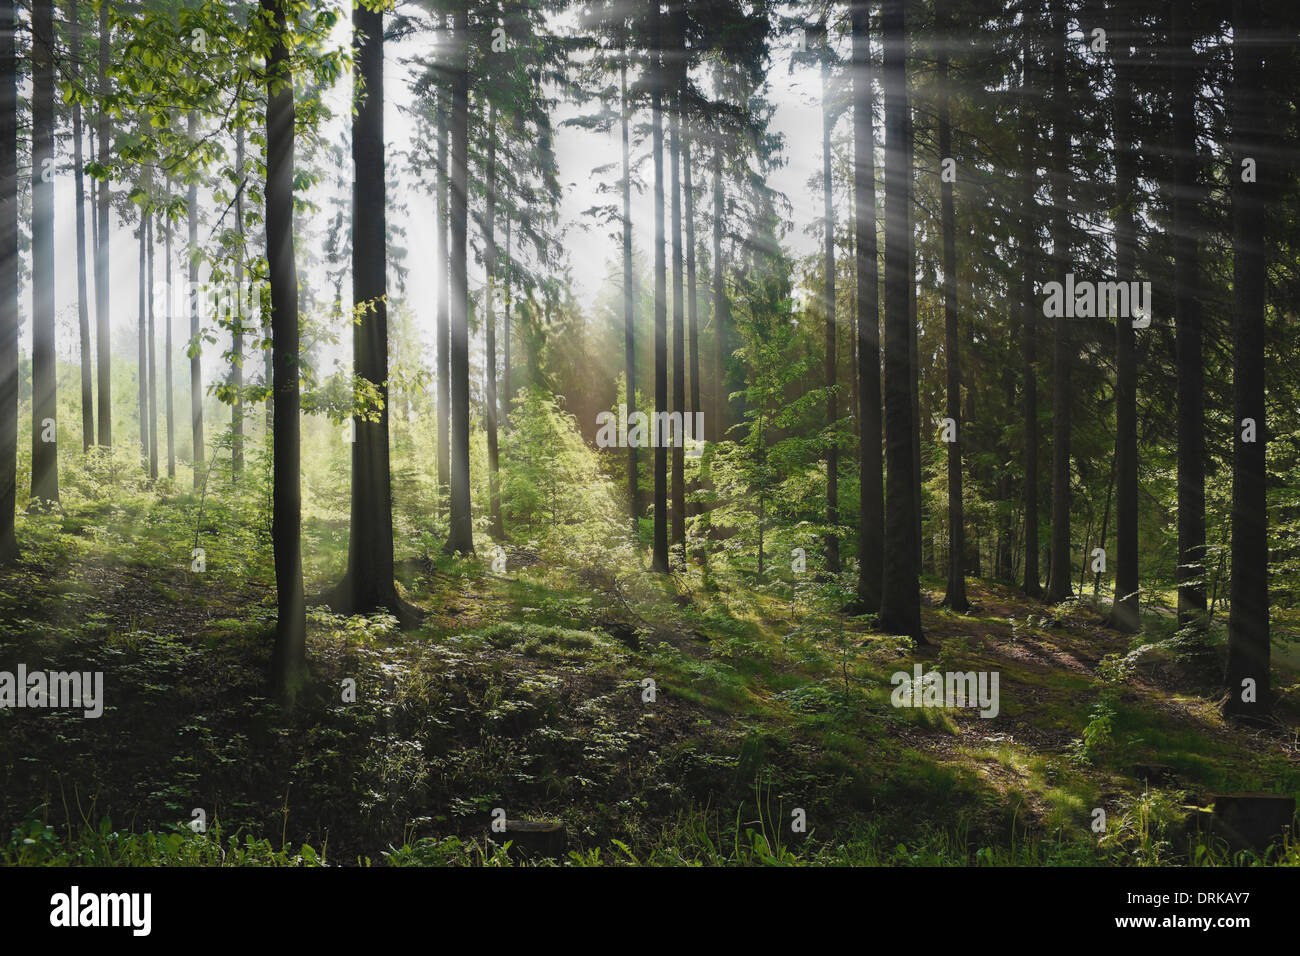 Mixed forest in the summer, the sun shines through the trees, Germany, Europe - Stock Image